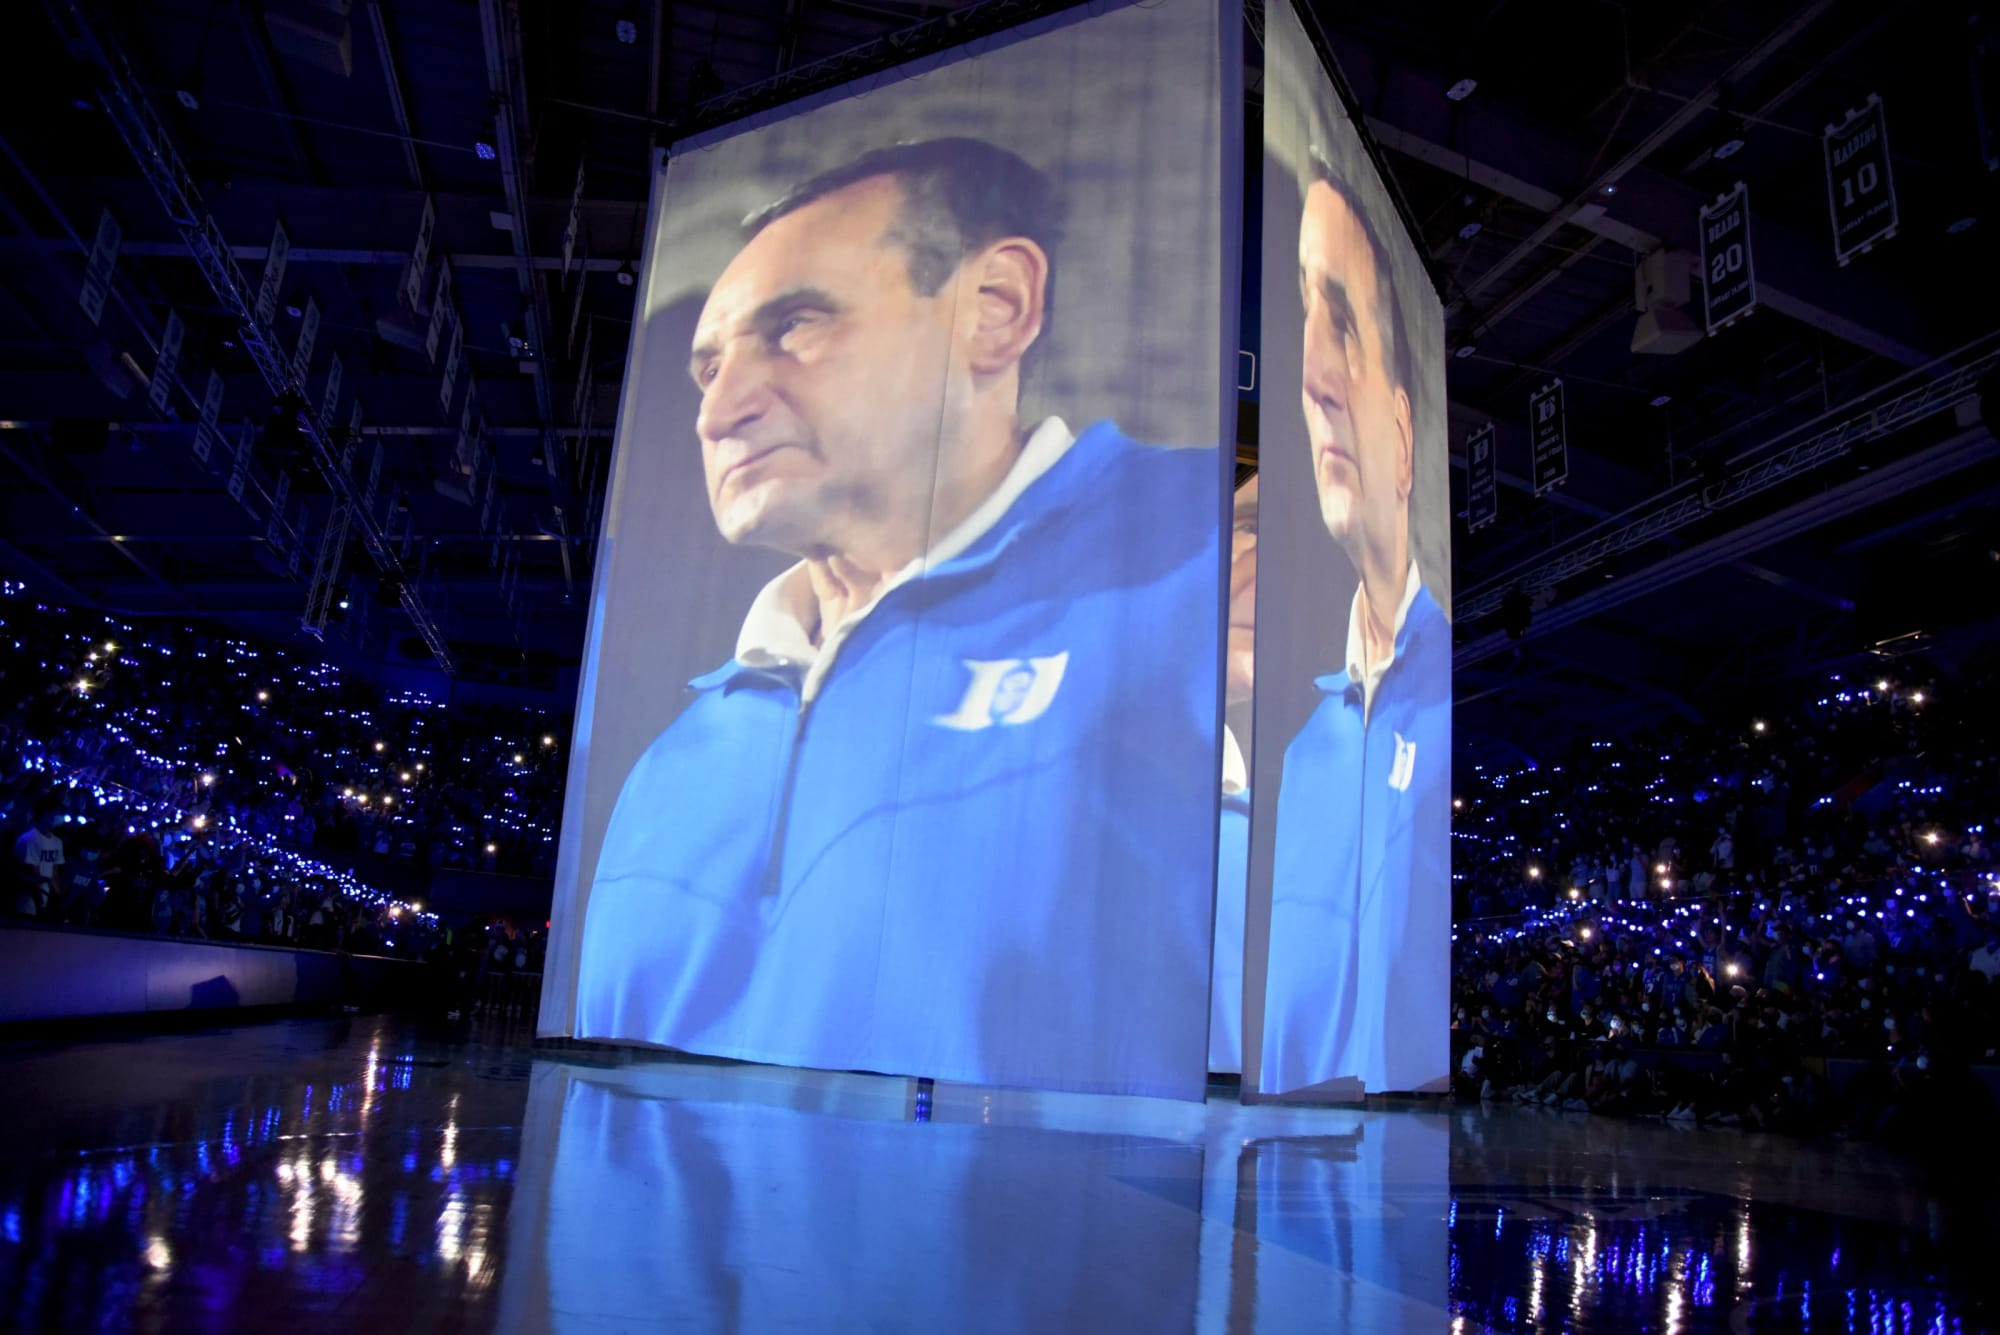 Duke basketball: This one feat has eluded Coach K